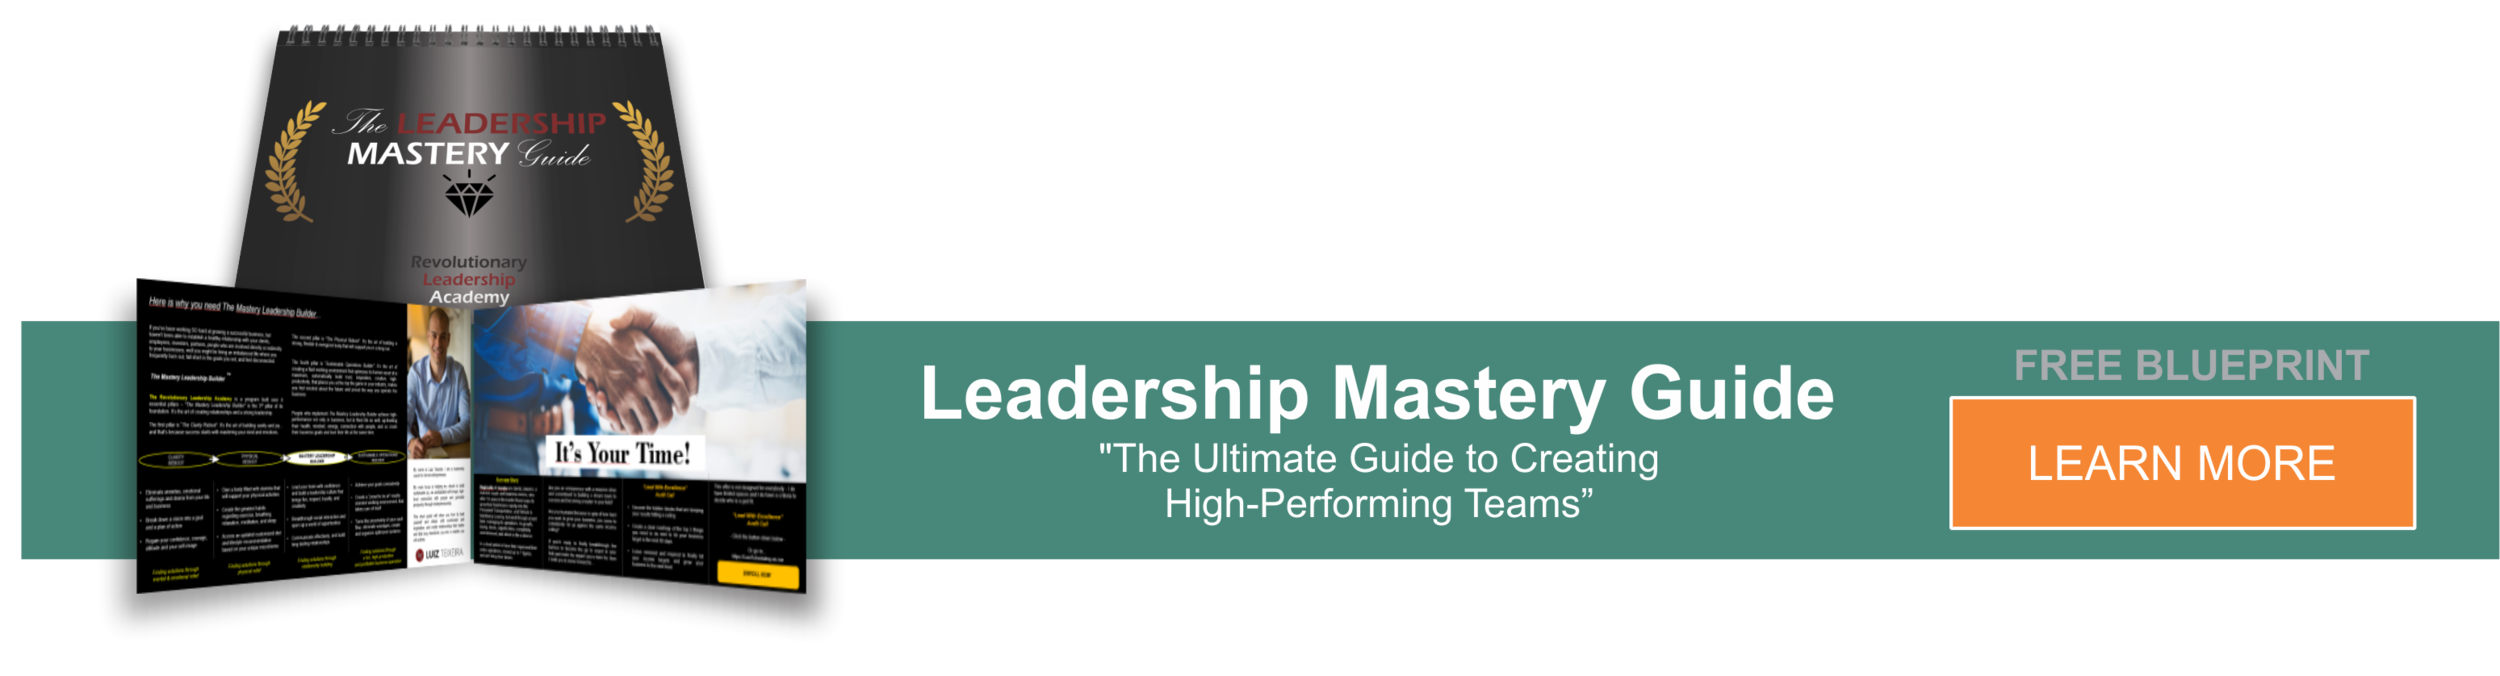 THE LEADERSHIP MASTERY GUIDE FRONT PAGE 02.png